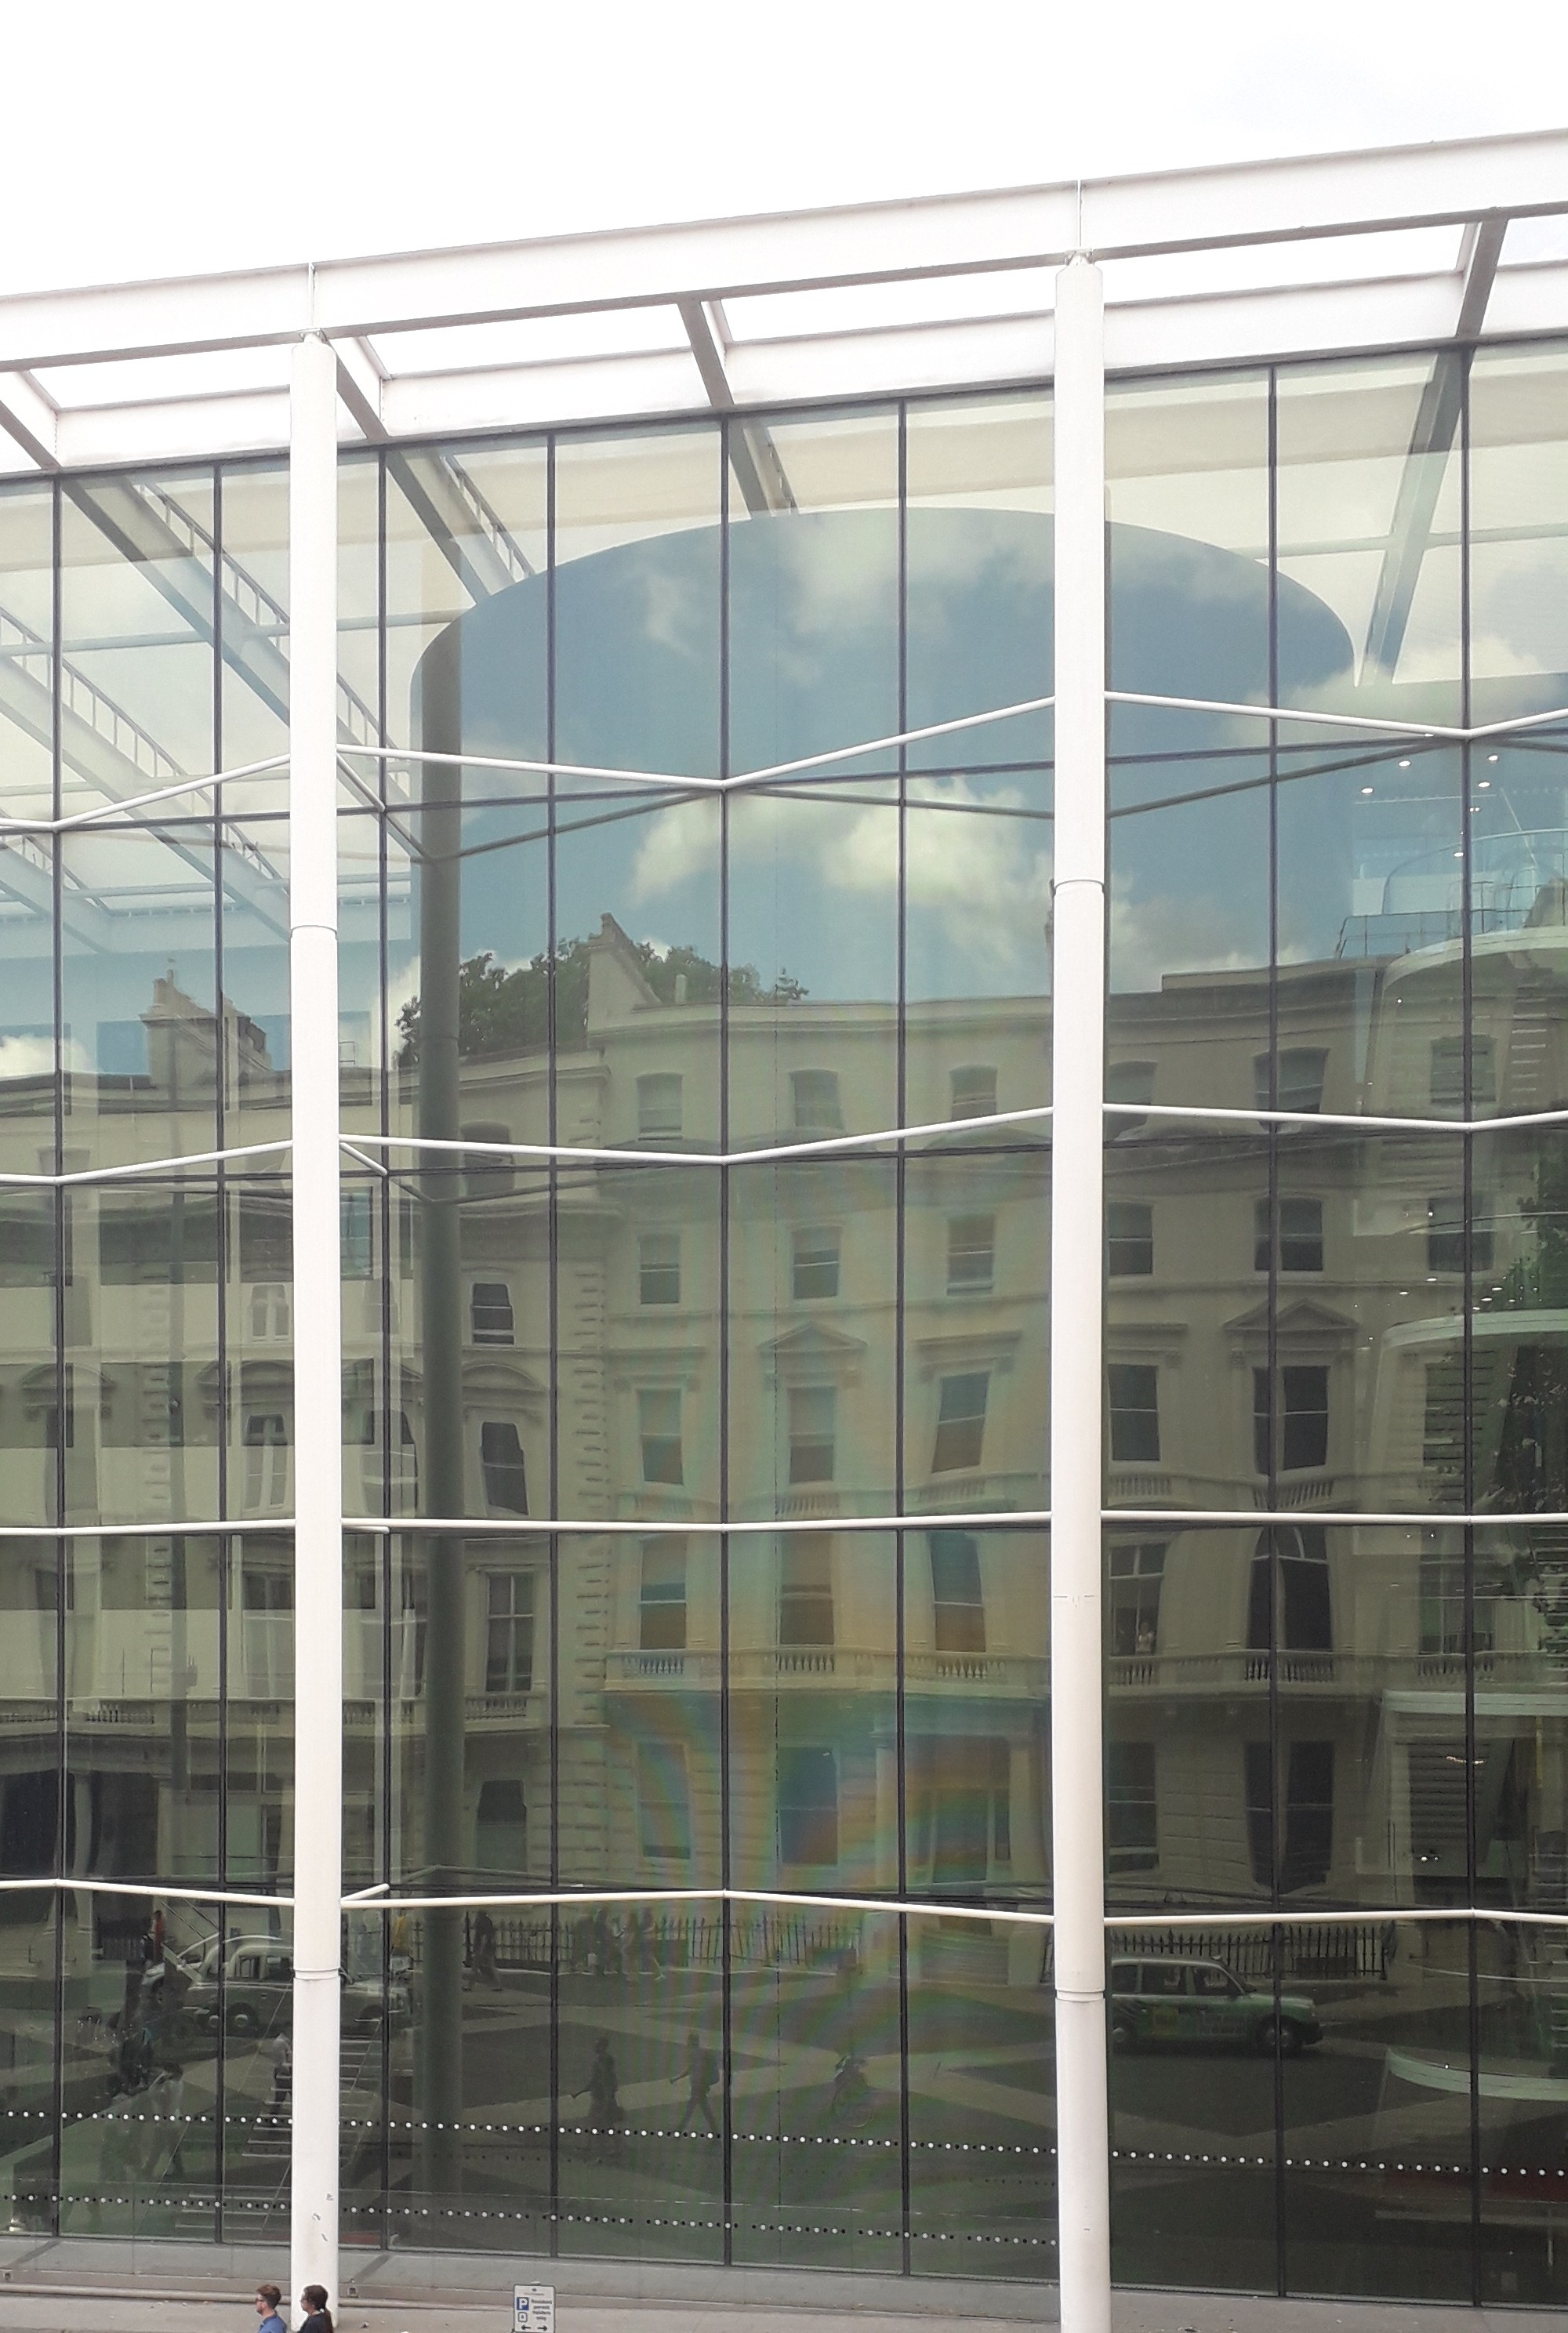 The Goethe Institut reflected in the windows of Imperial College over the road